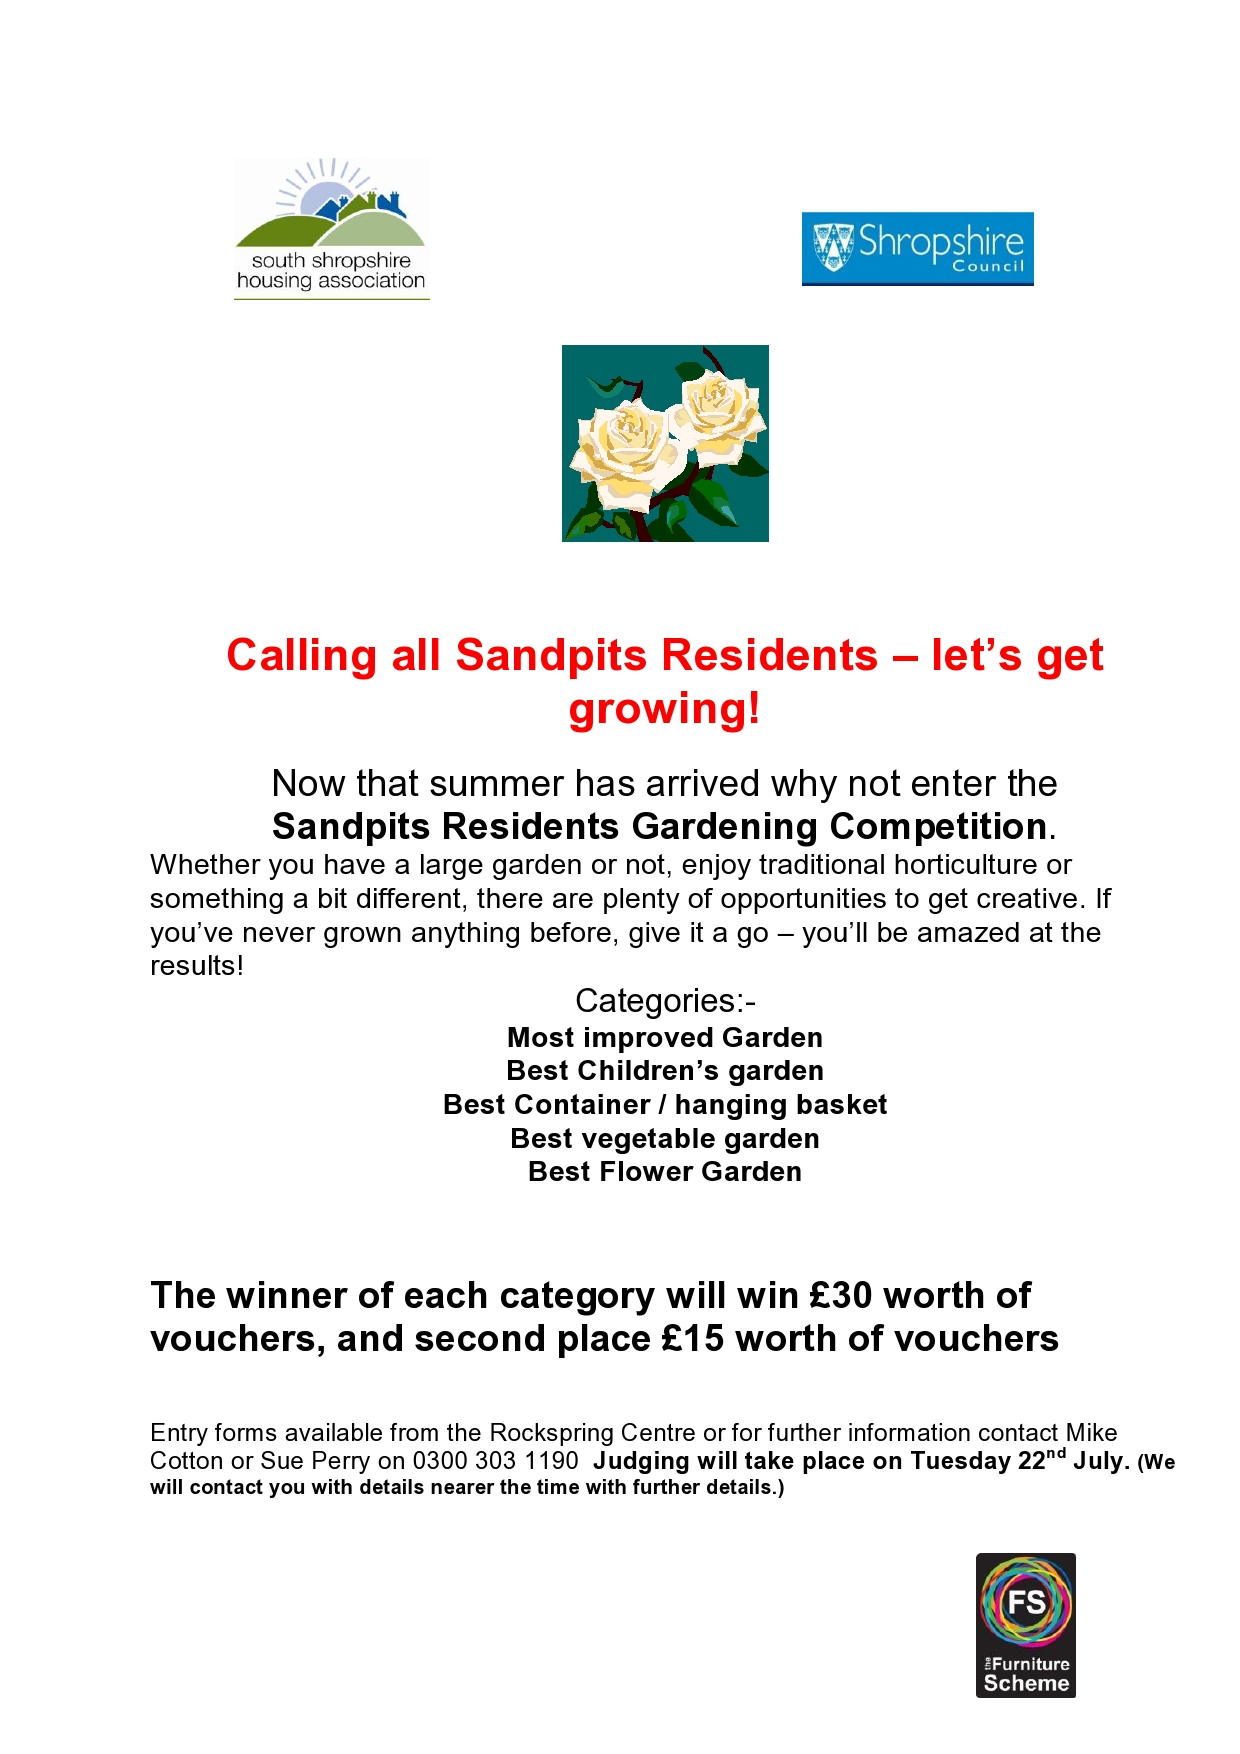 Sandpits Residents Gardening Competition 2014 South